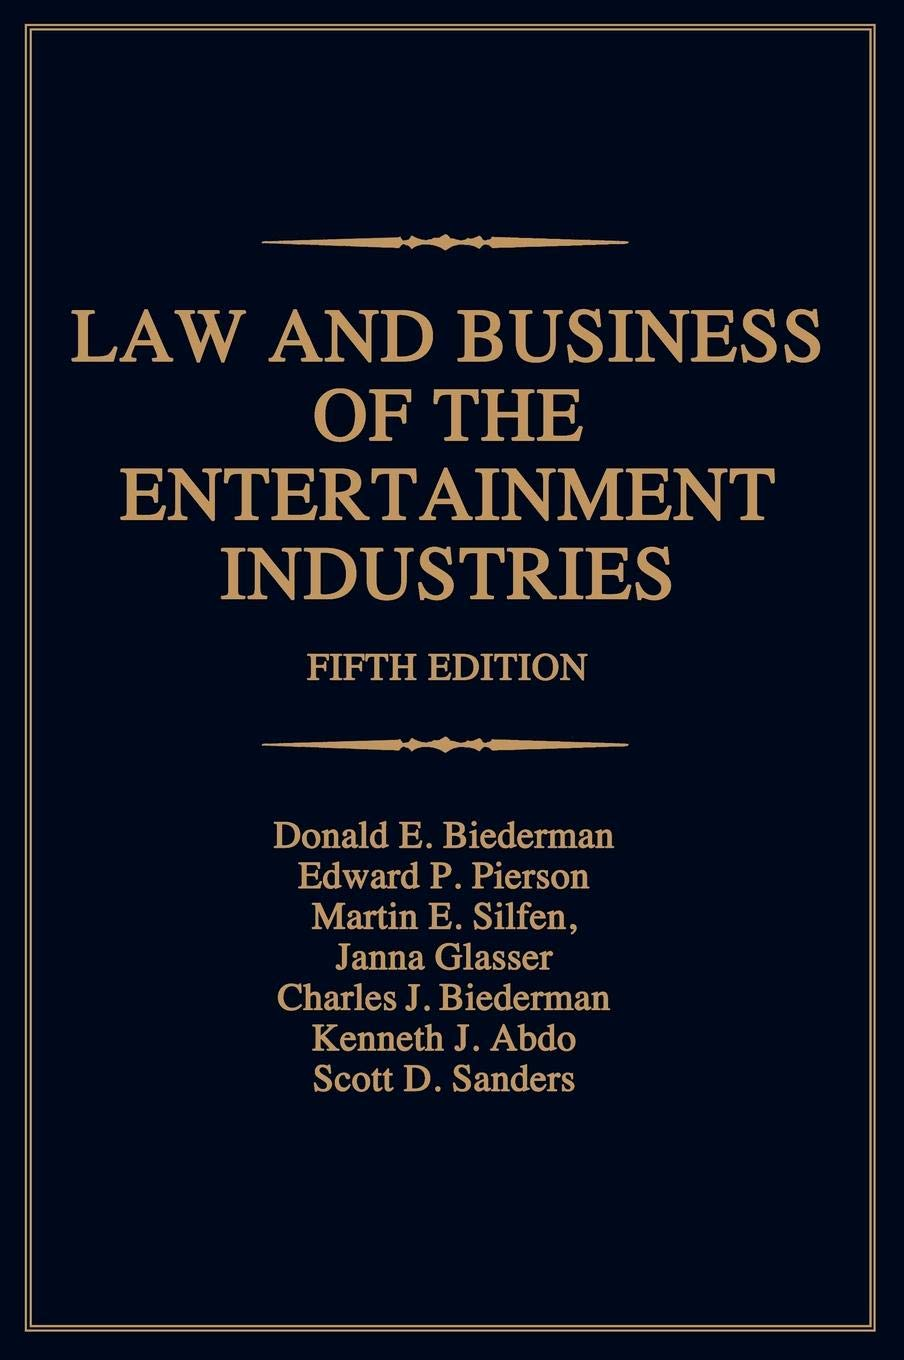 Law and Business of the Entertainment Industries, 5th Edition (Law & Business of the Entertainment Industries) by Praeger